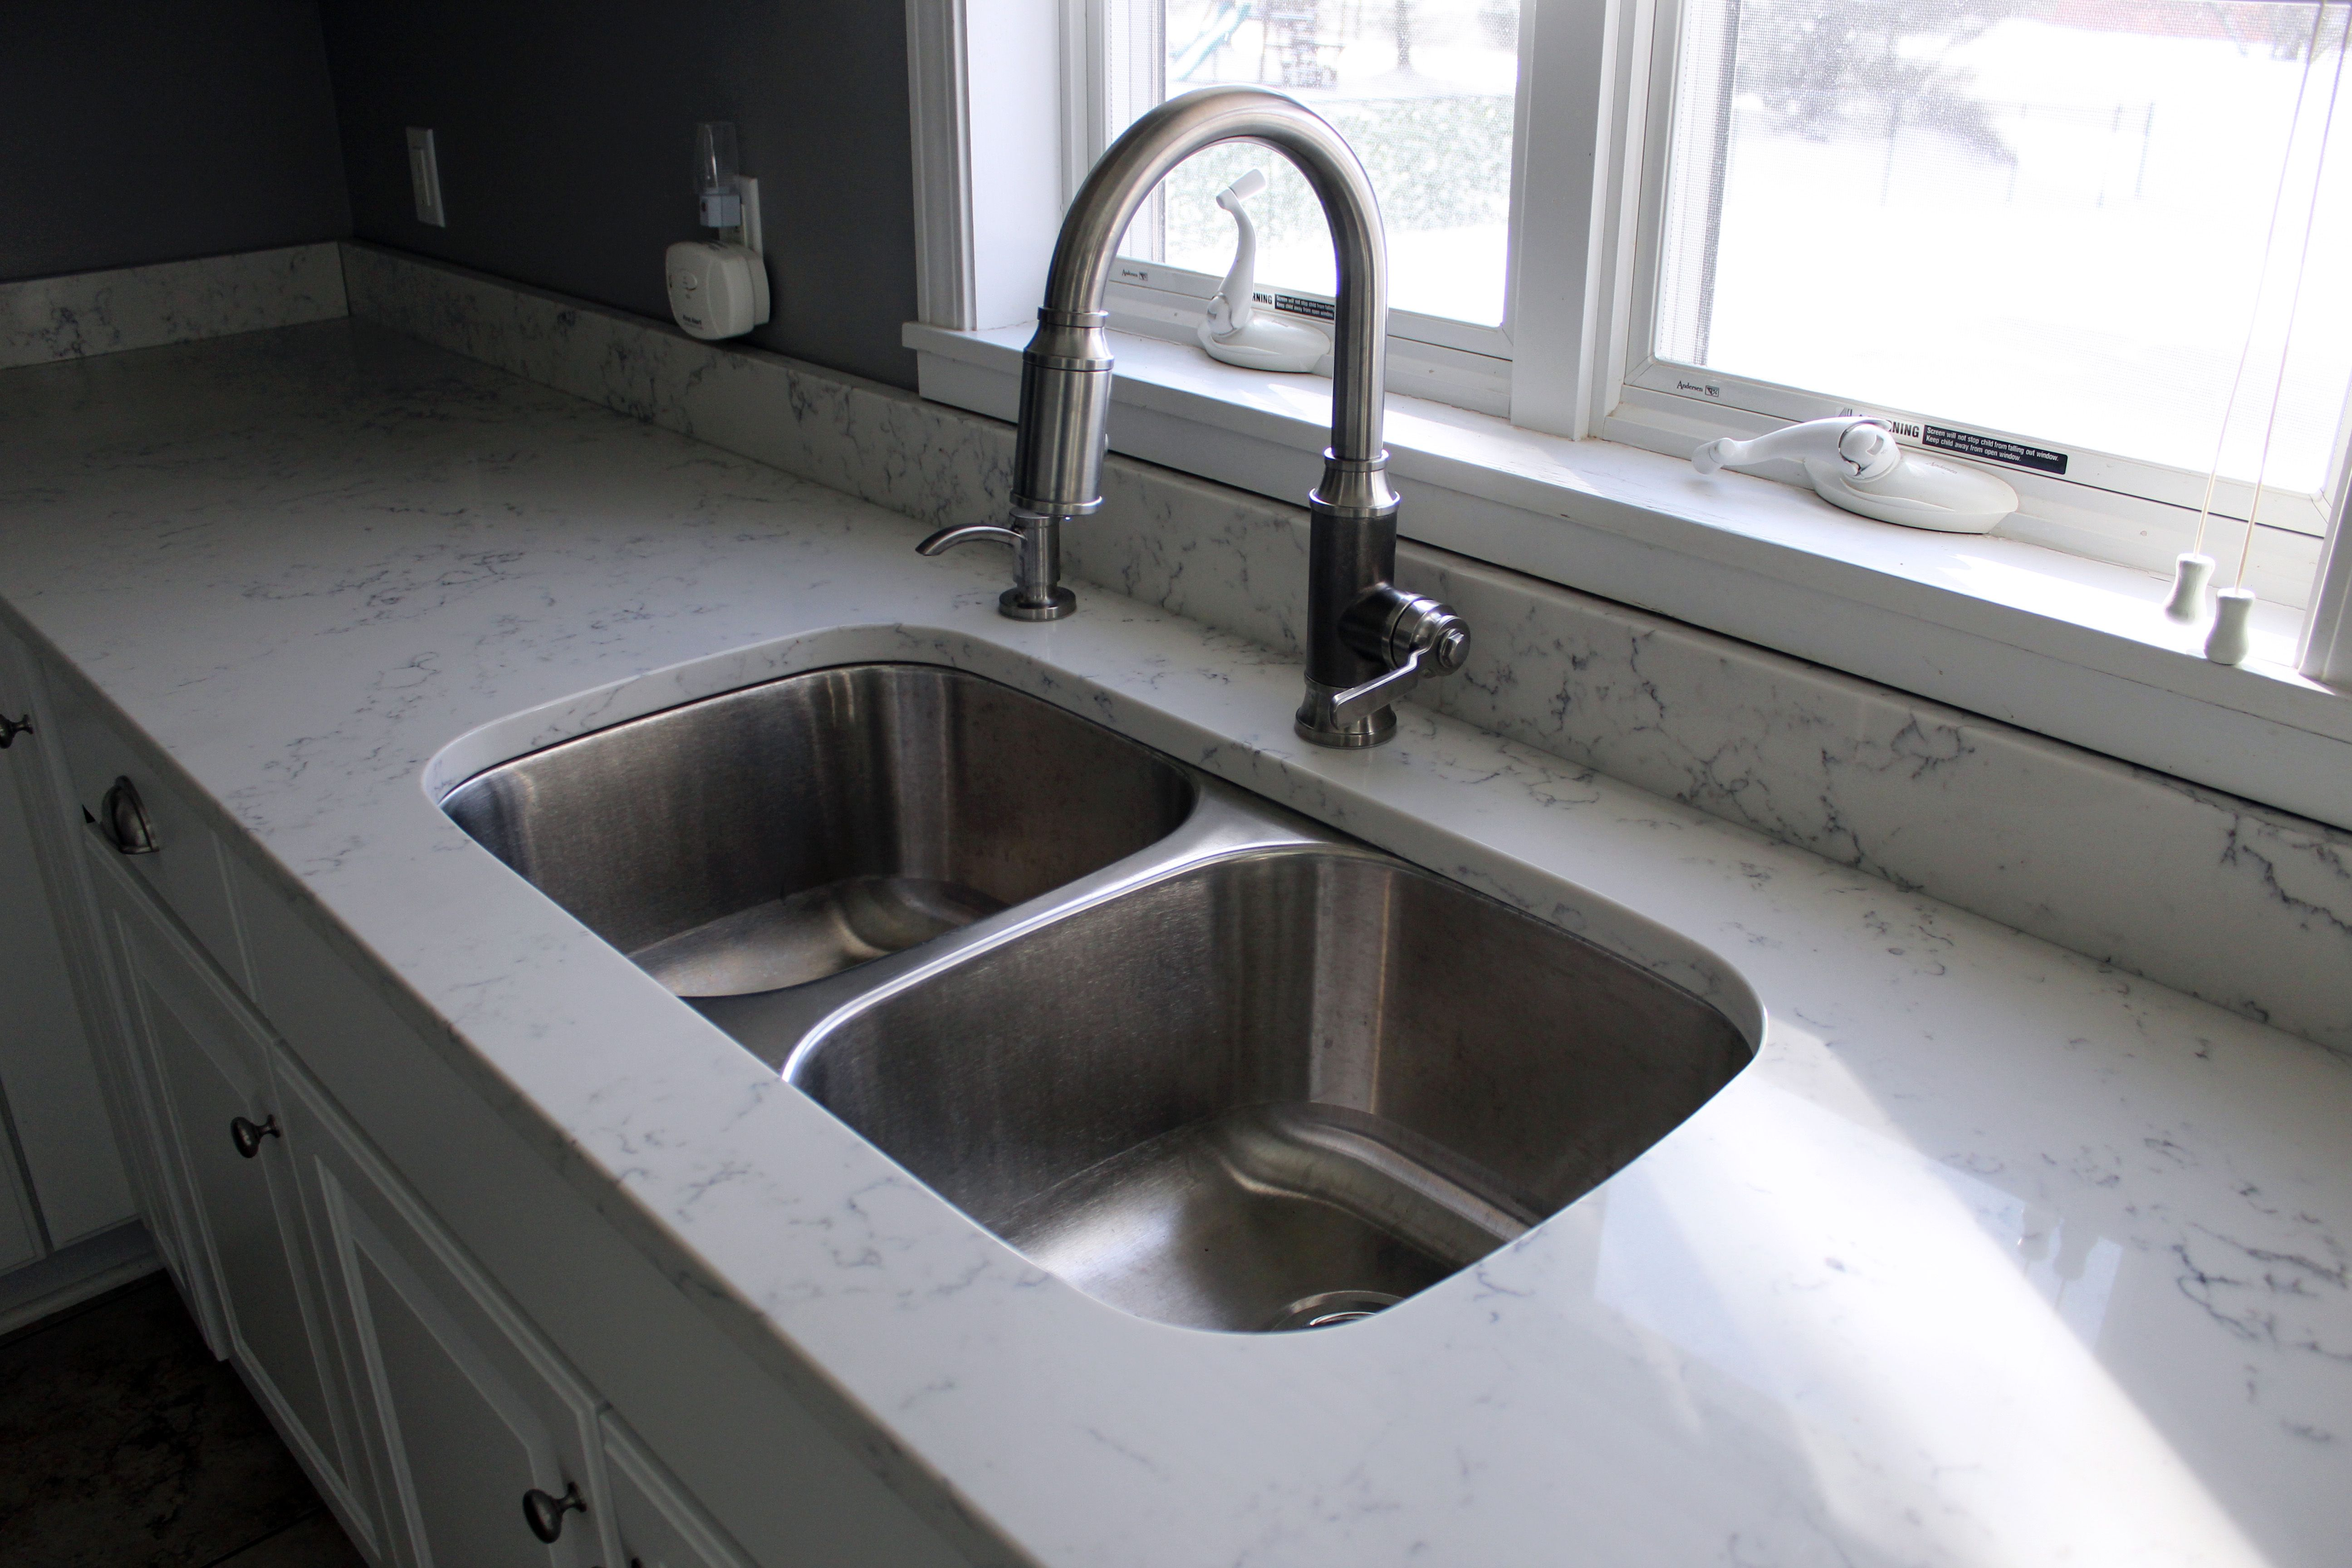 Carrara White Quartz By Aggranite 502a Sink By Midwest Aggranite